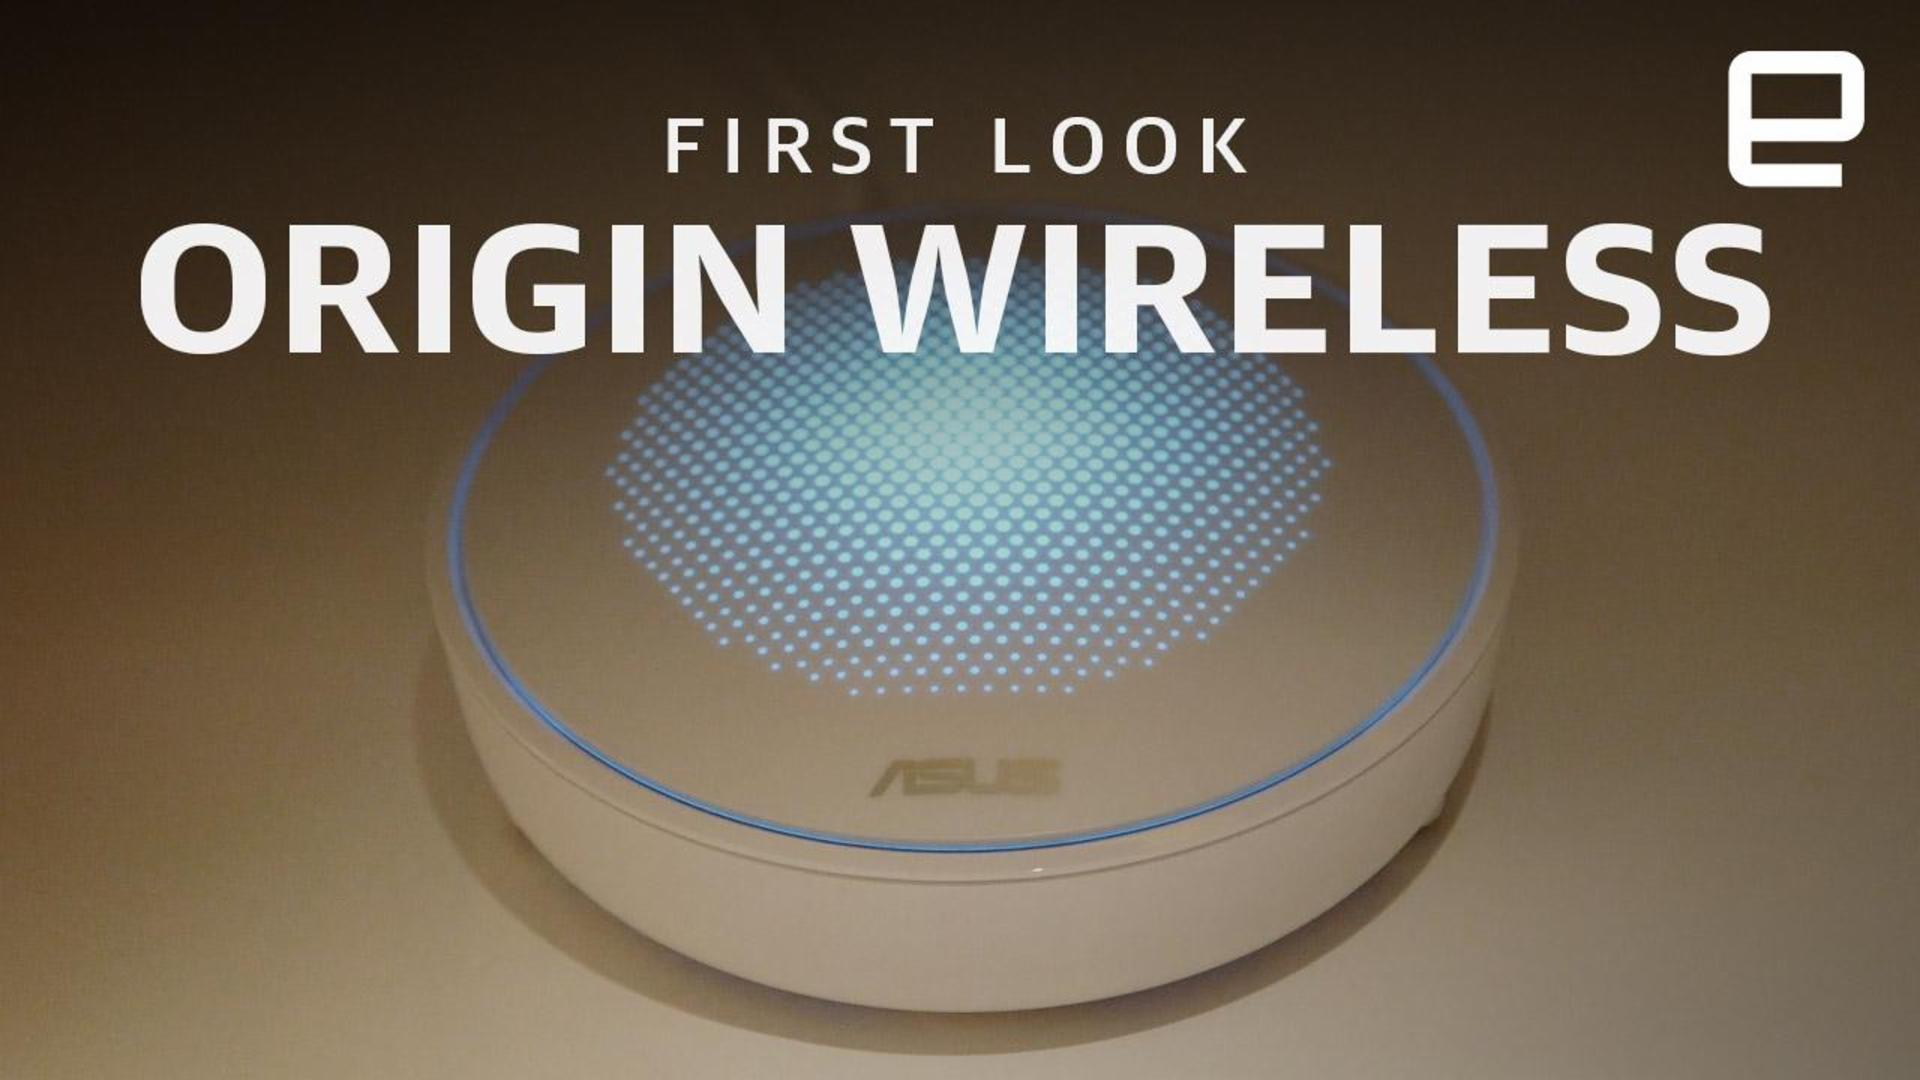 This mesh WiFi router can track motion to protect your family